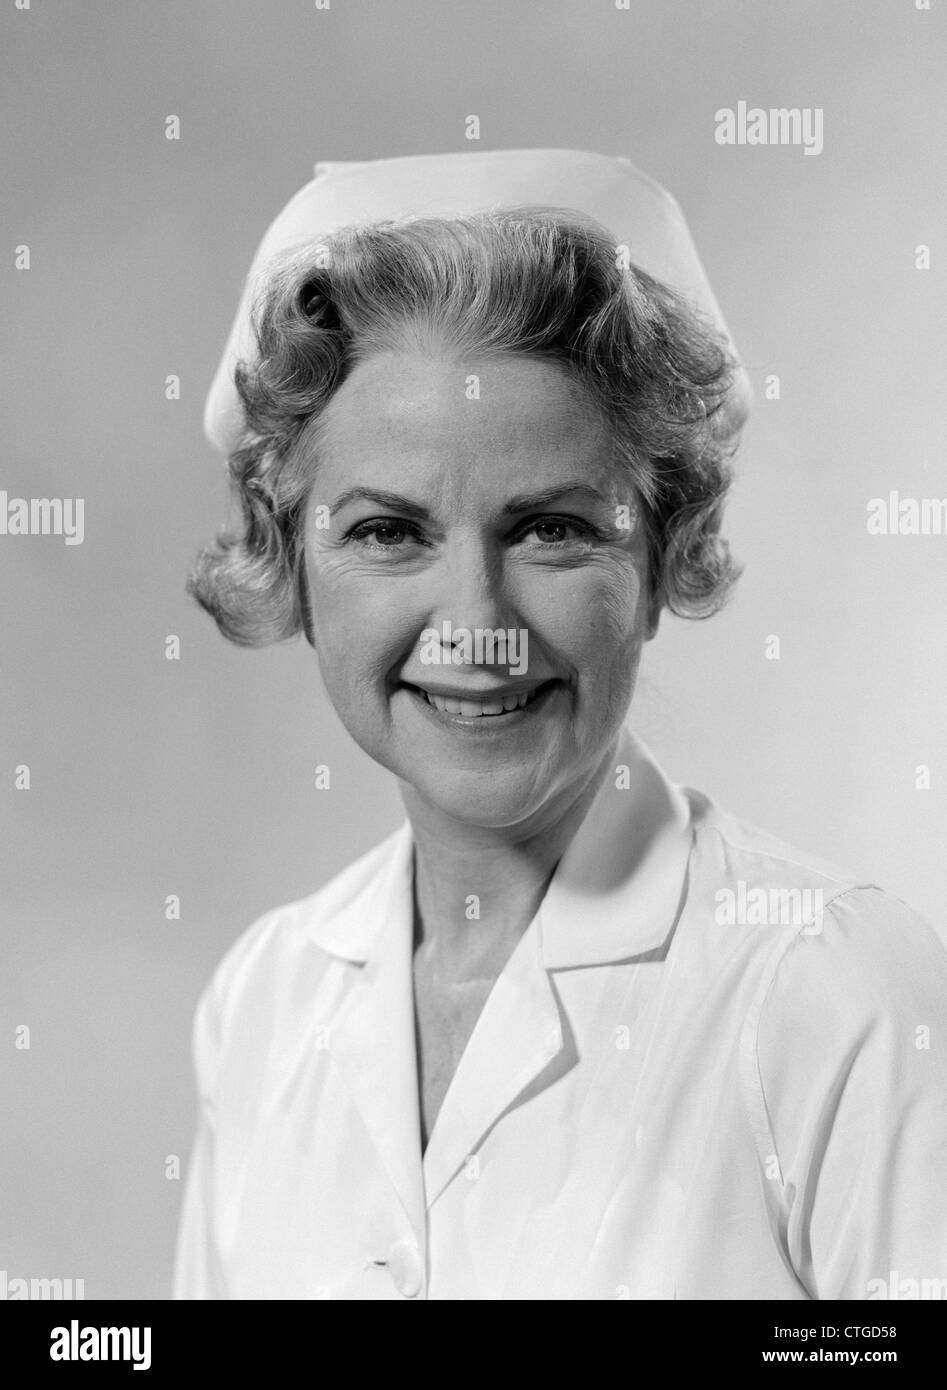 1960s PORTRAIT OF WOMAN NURSE SMILING WEARING WHITE CAP AND UNIFORM STUDIO INDOOR - Stock Image